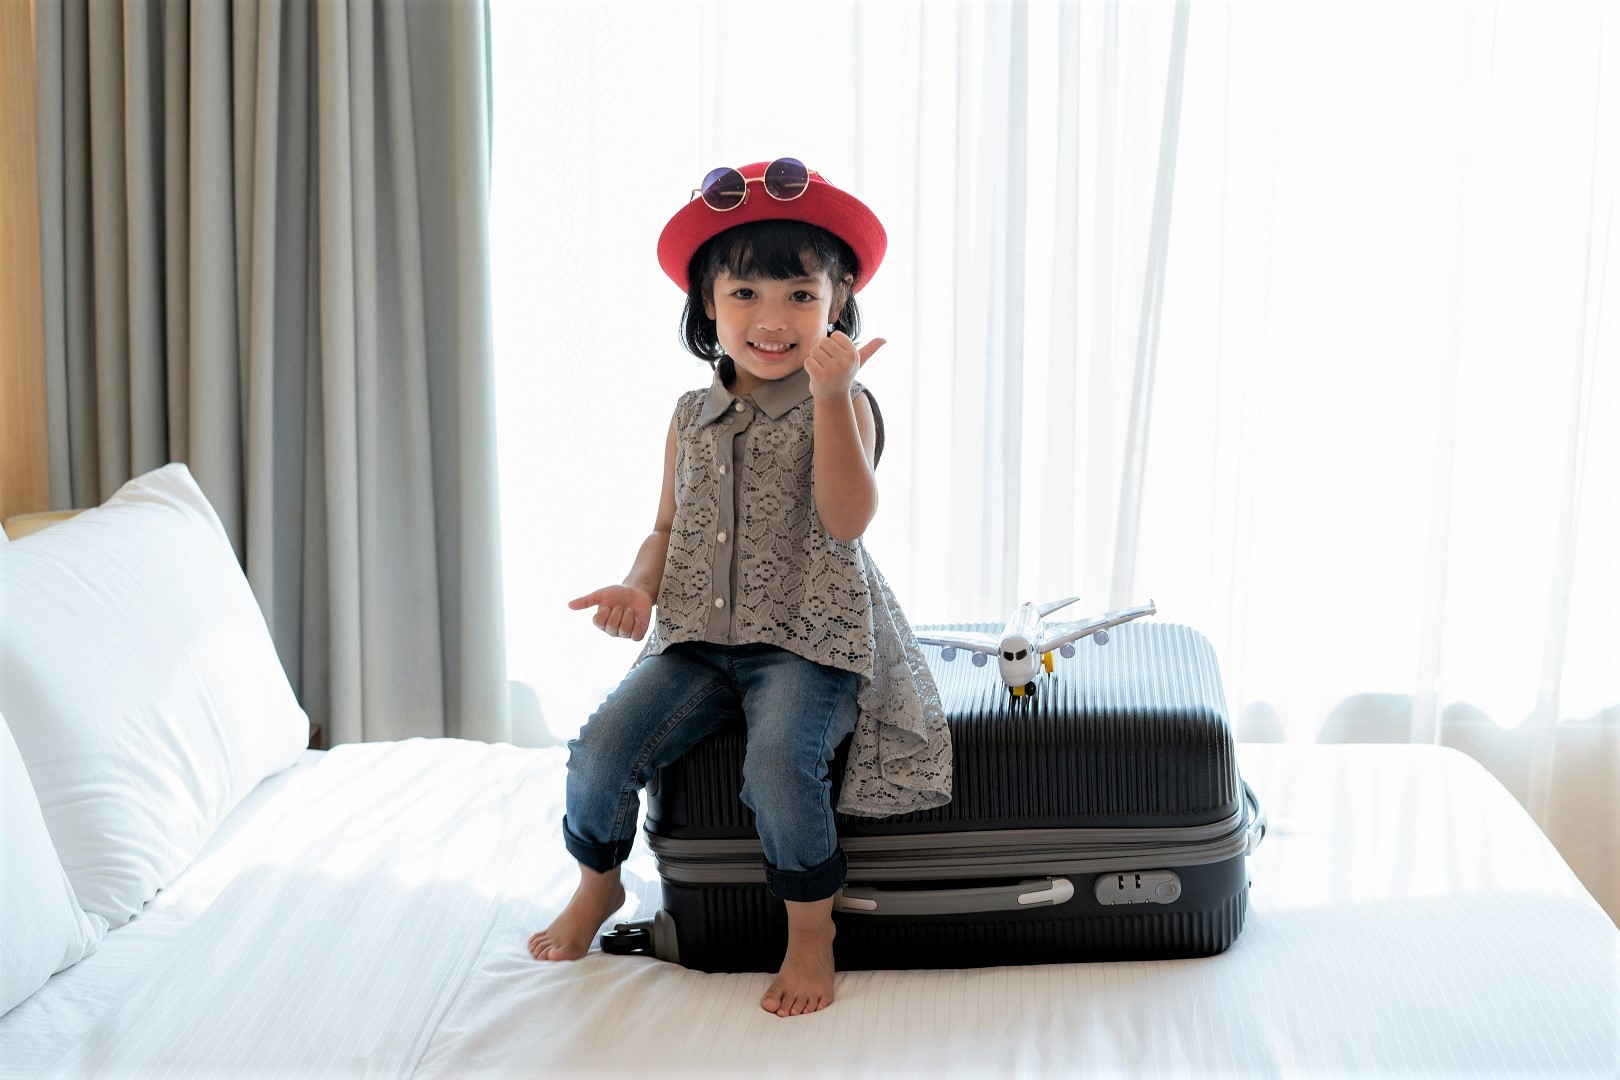 Young Asian Girl Sitting on Luggage Traveling Kids Suitcase